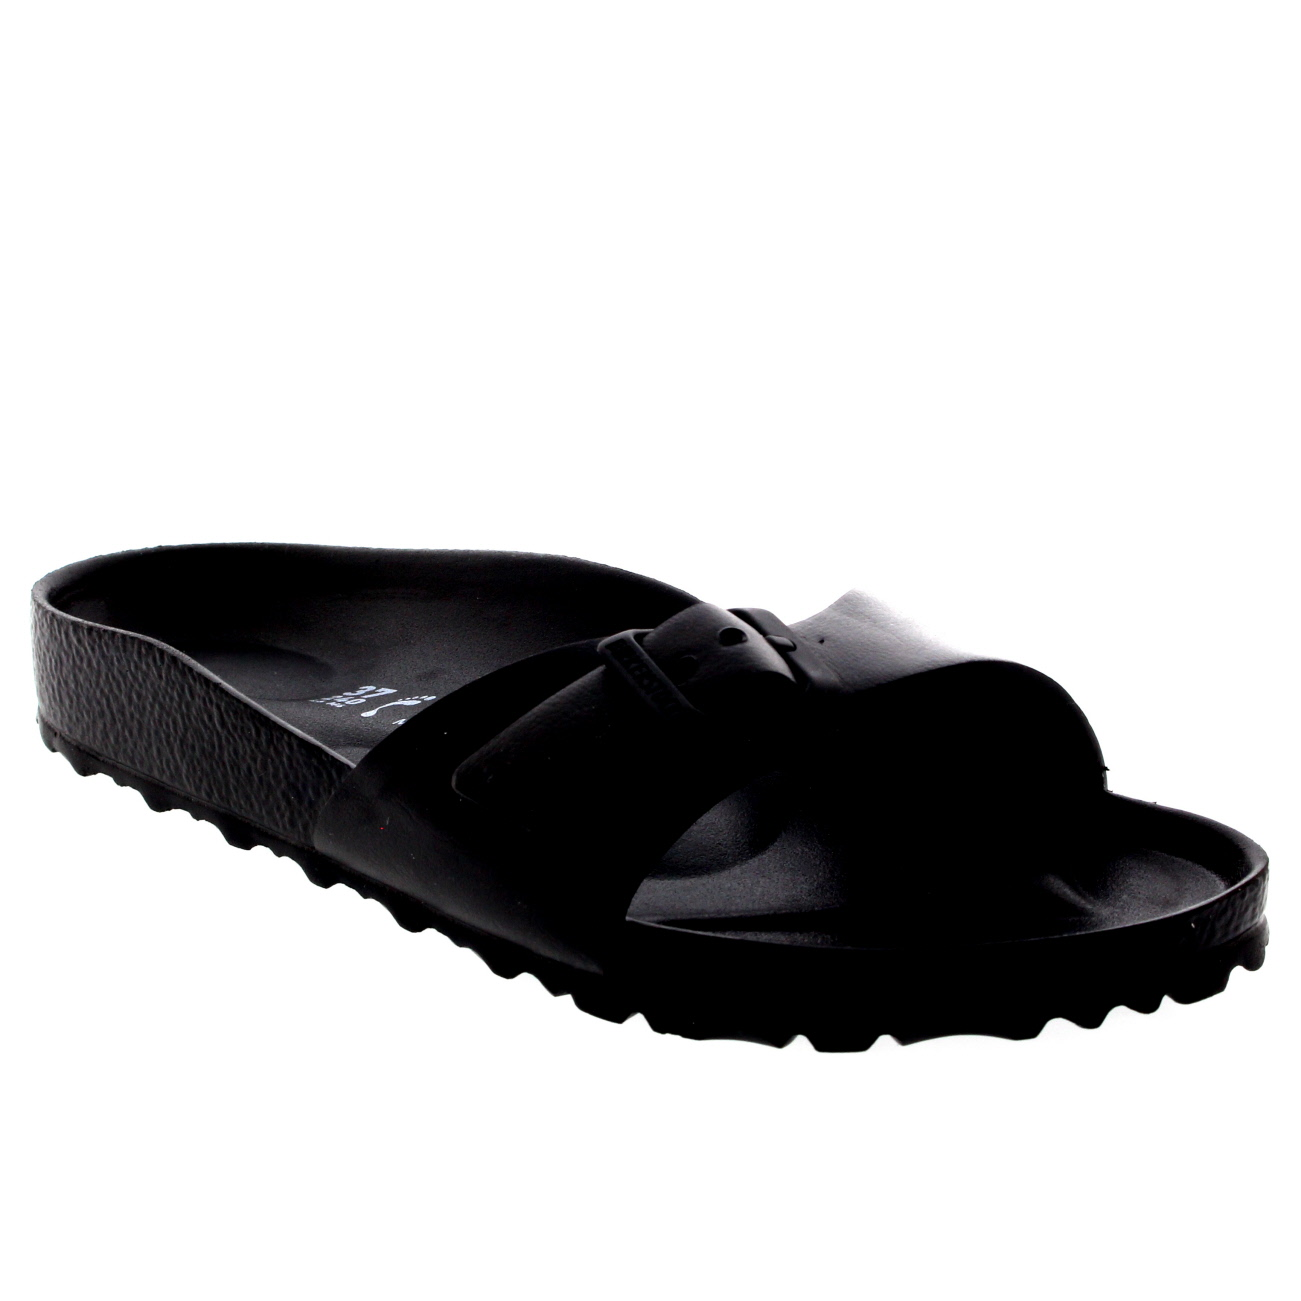 Unisex Birkenstock Madrid Sandals